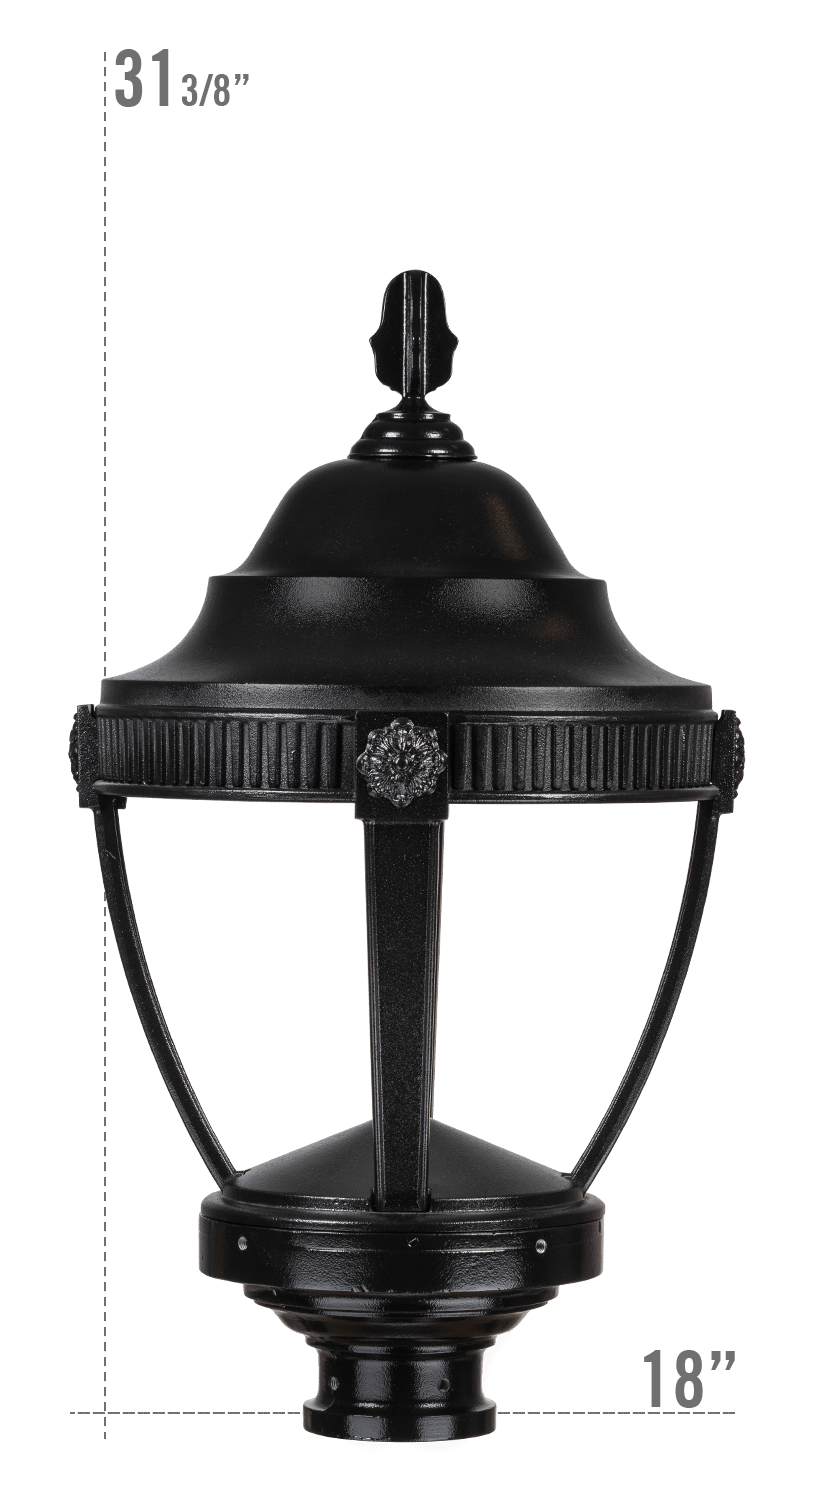 AUGUSTA LED LUMINAIRE WITH DUNMORE FITTER DARK SKY